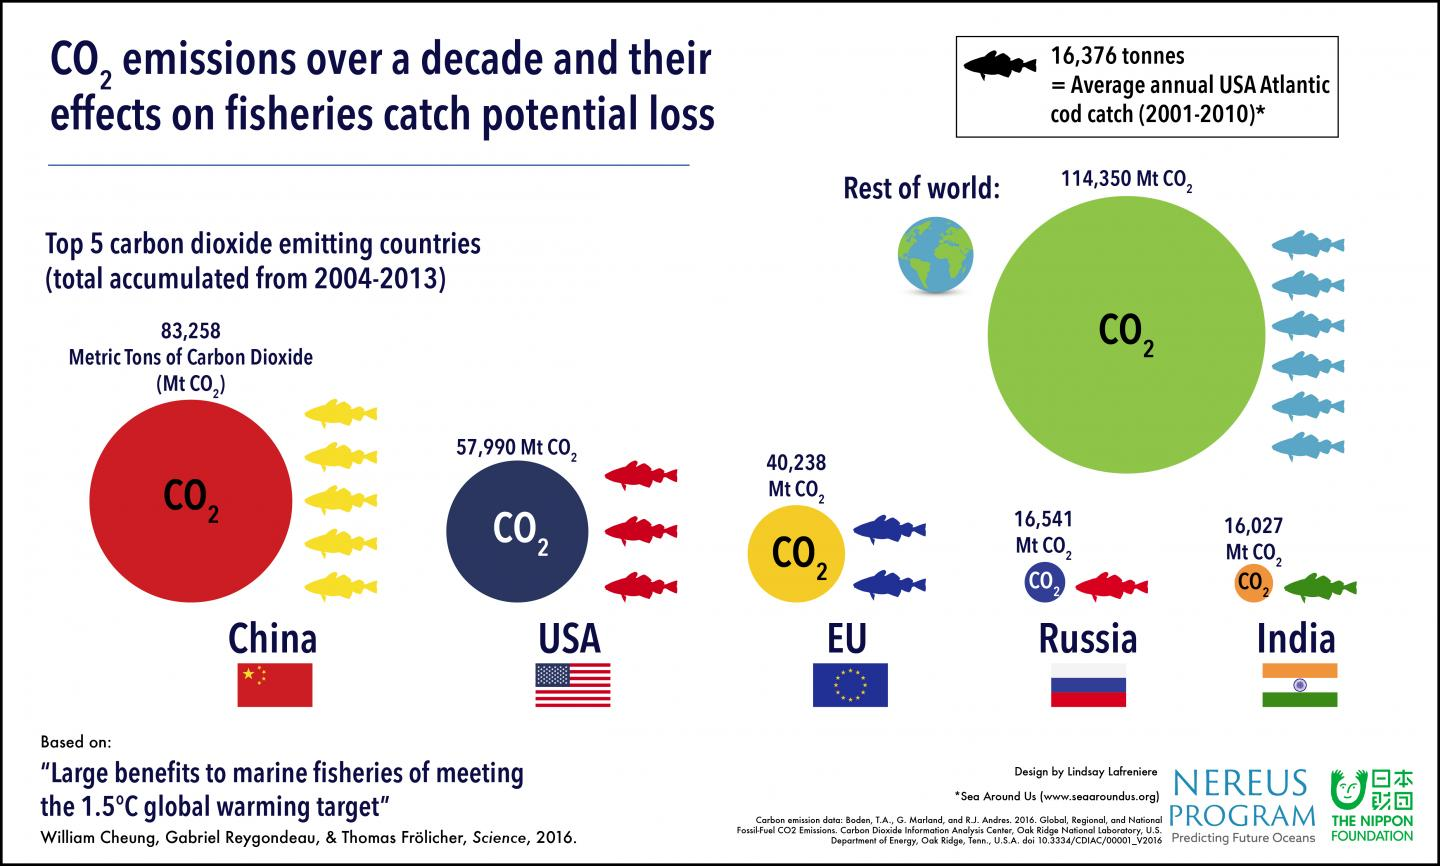 Paris Agreement Target Critical for Preserving Fisheries